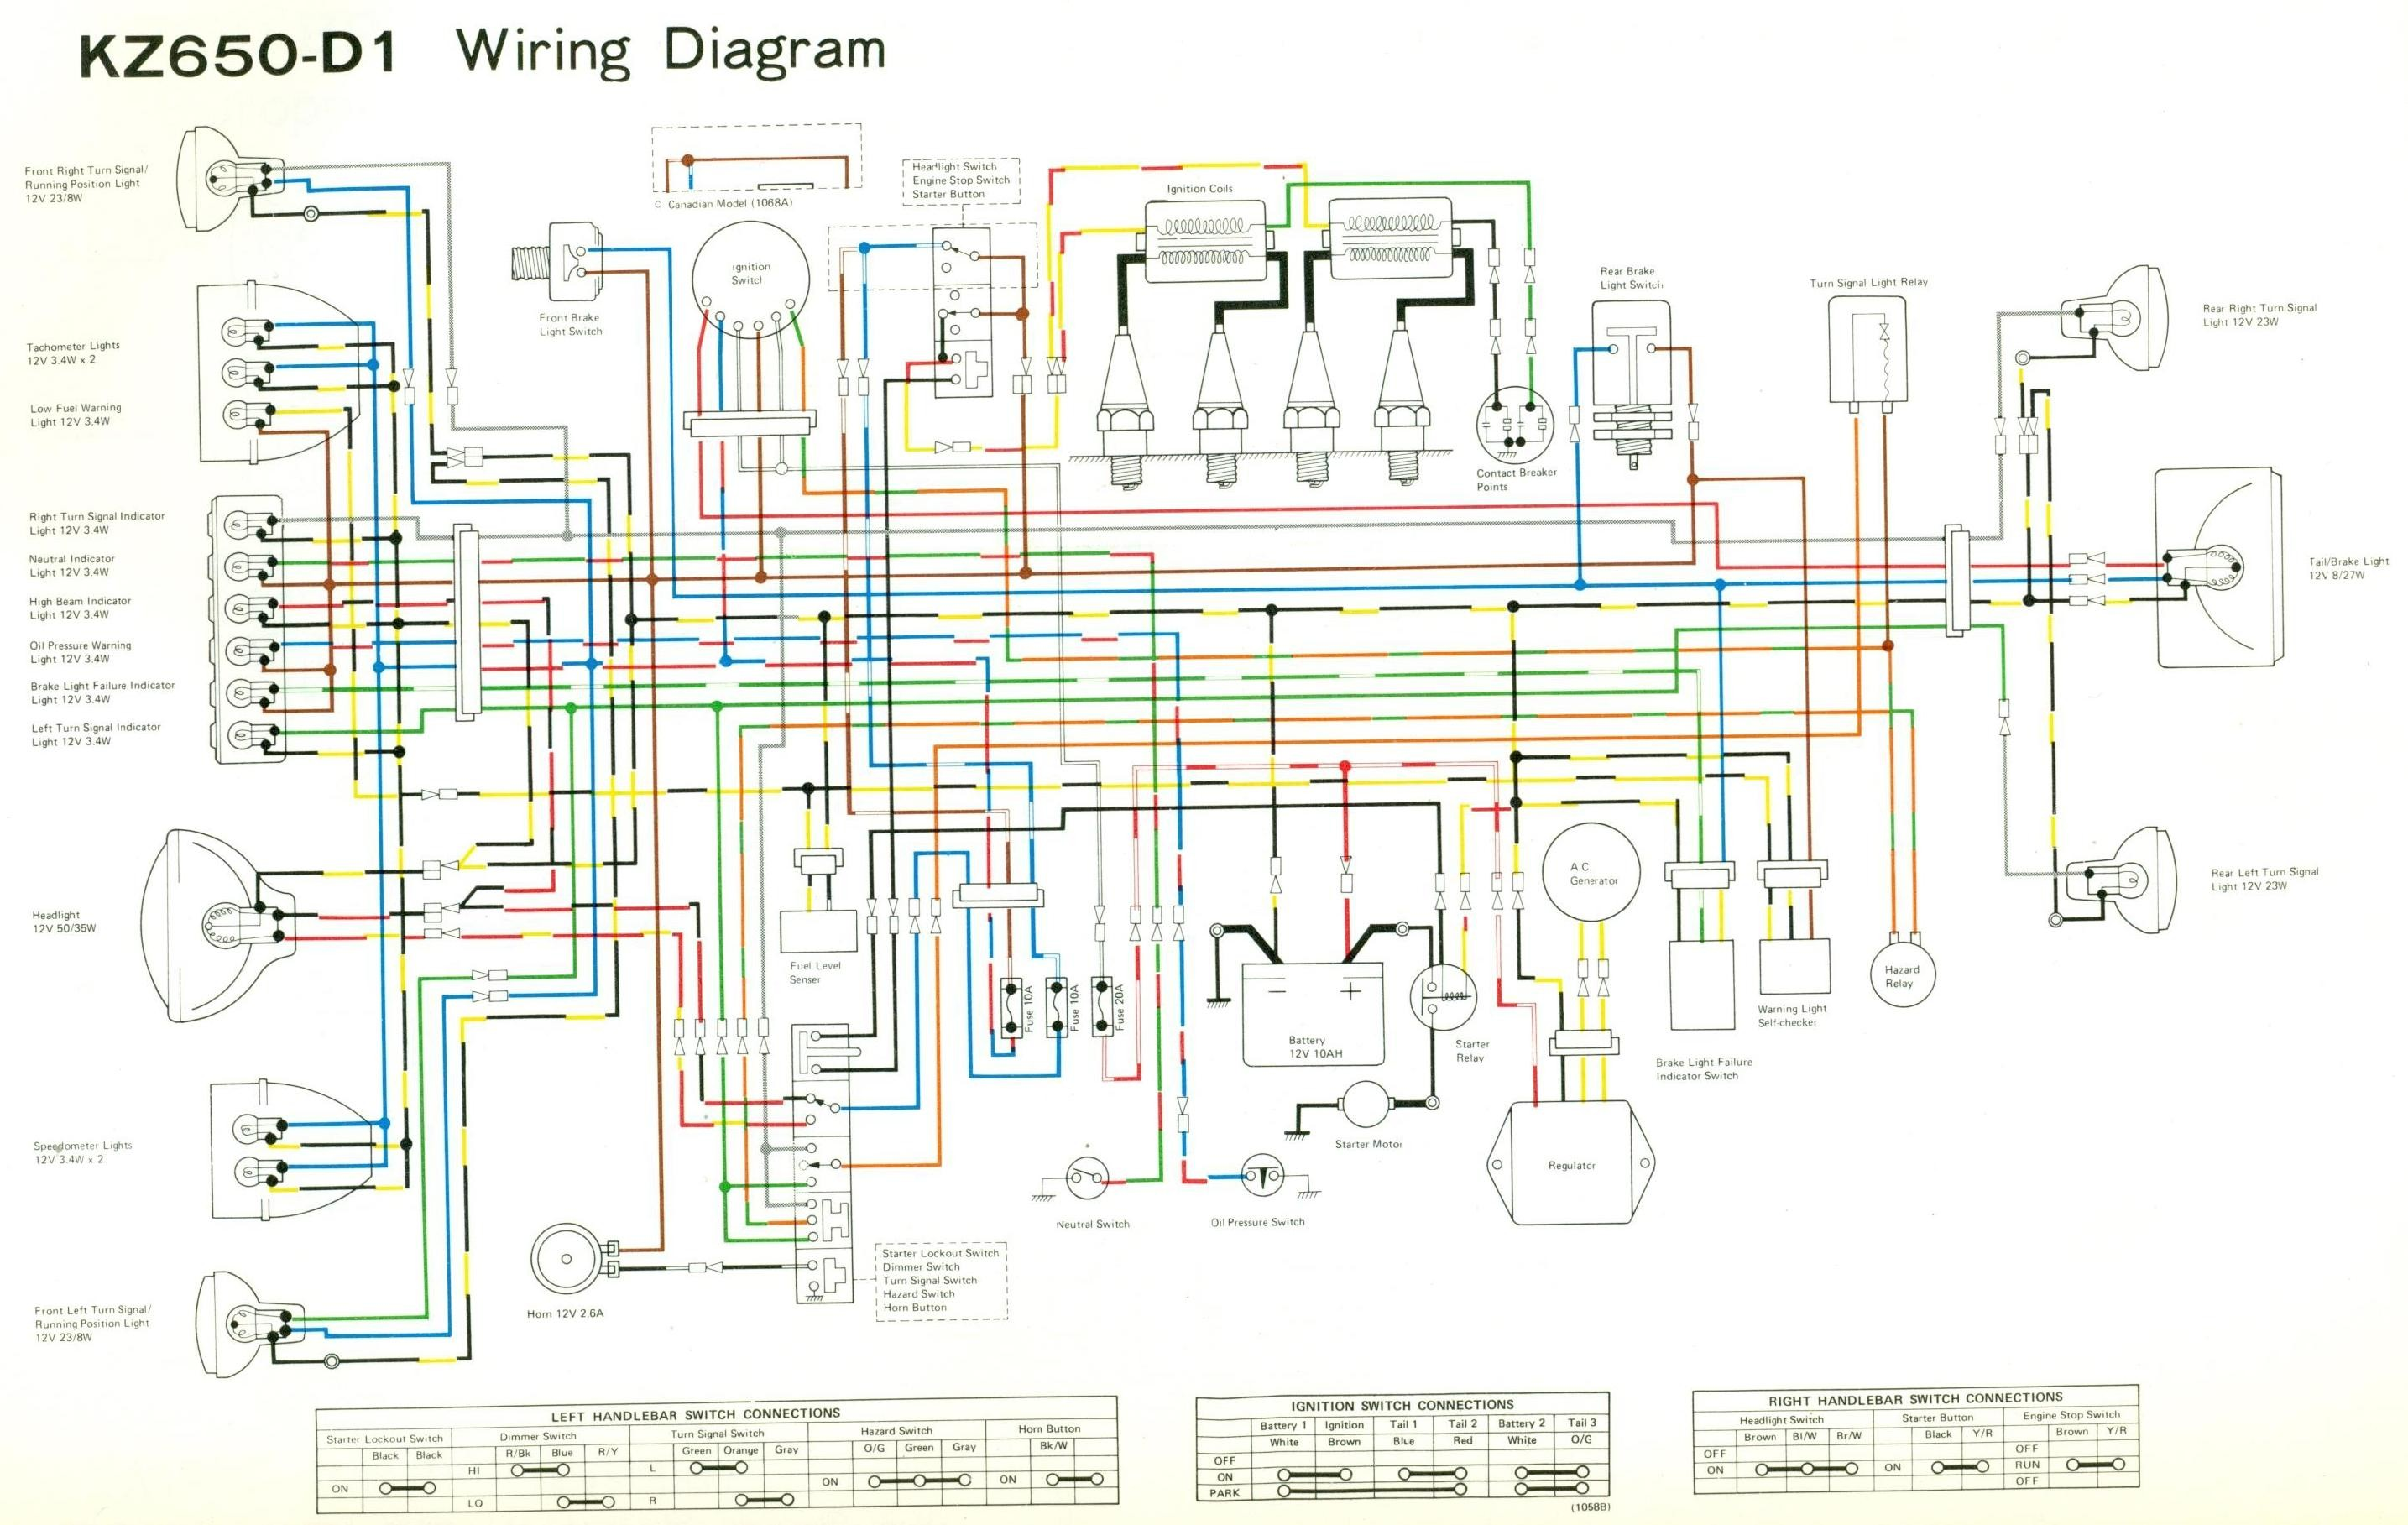 1977 Xs650 Wiring Diagram | Digital Resources on